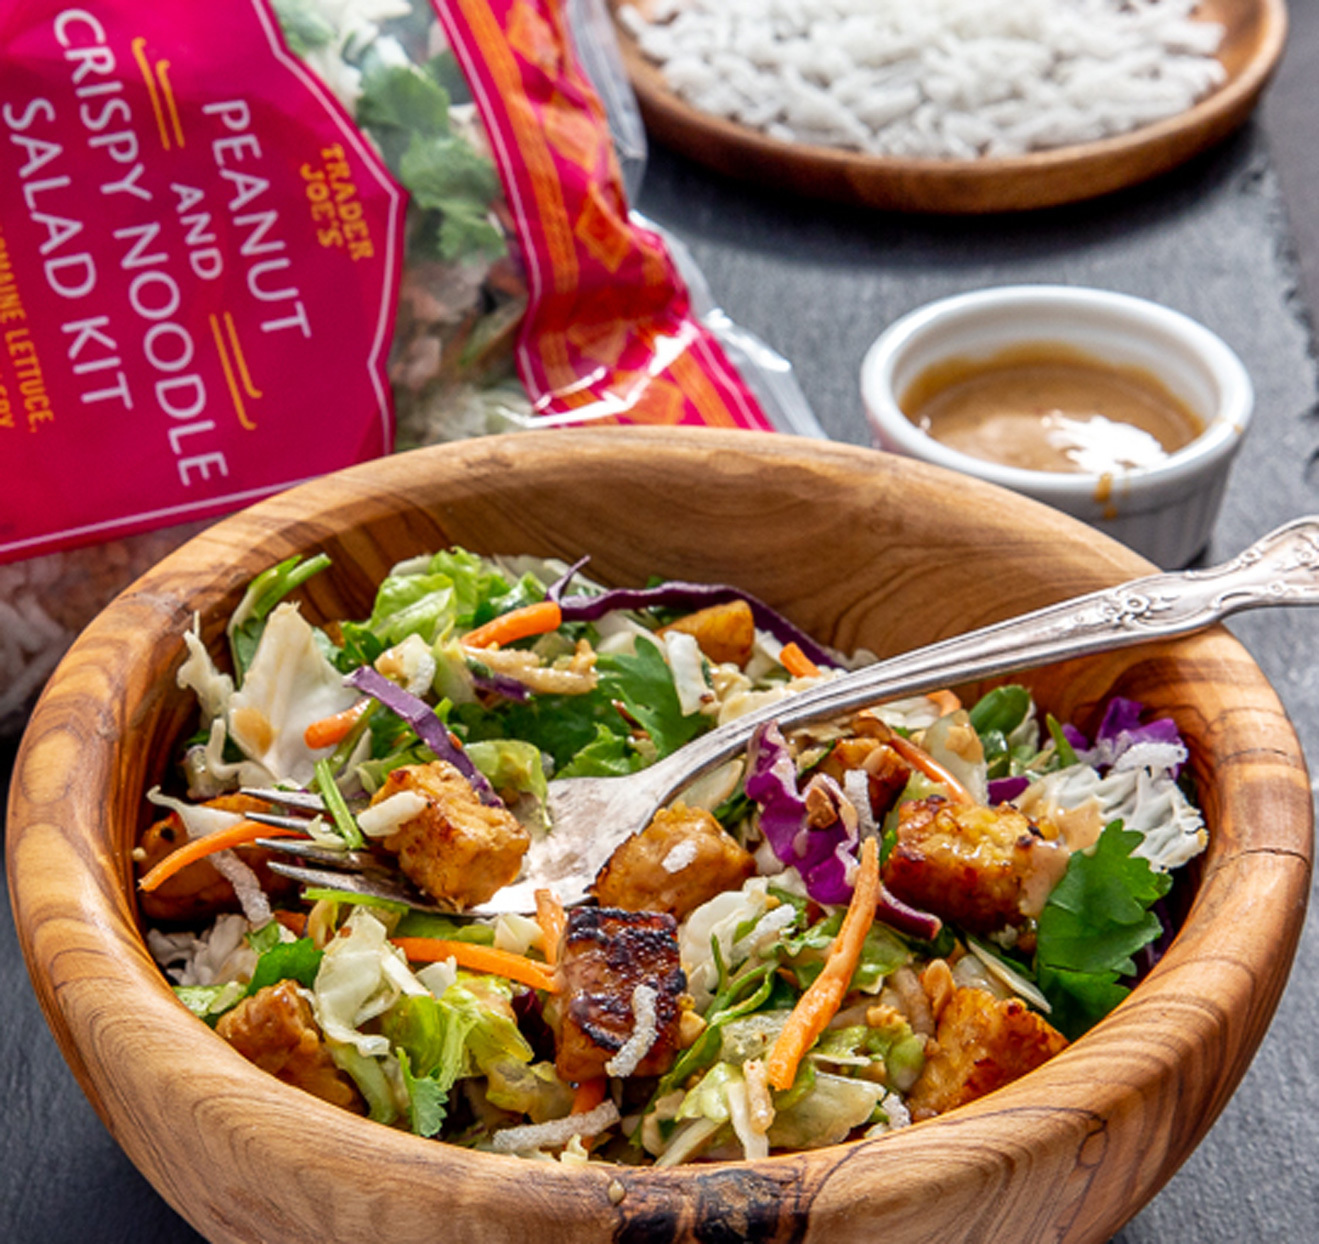 Trader Joe's Peanut and Crispy Noodle Salad Kit